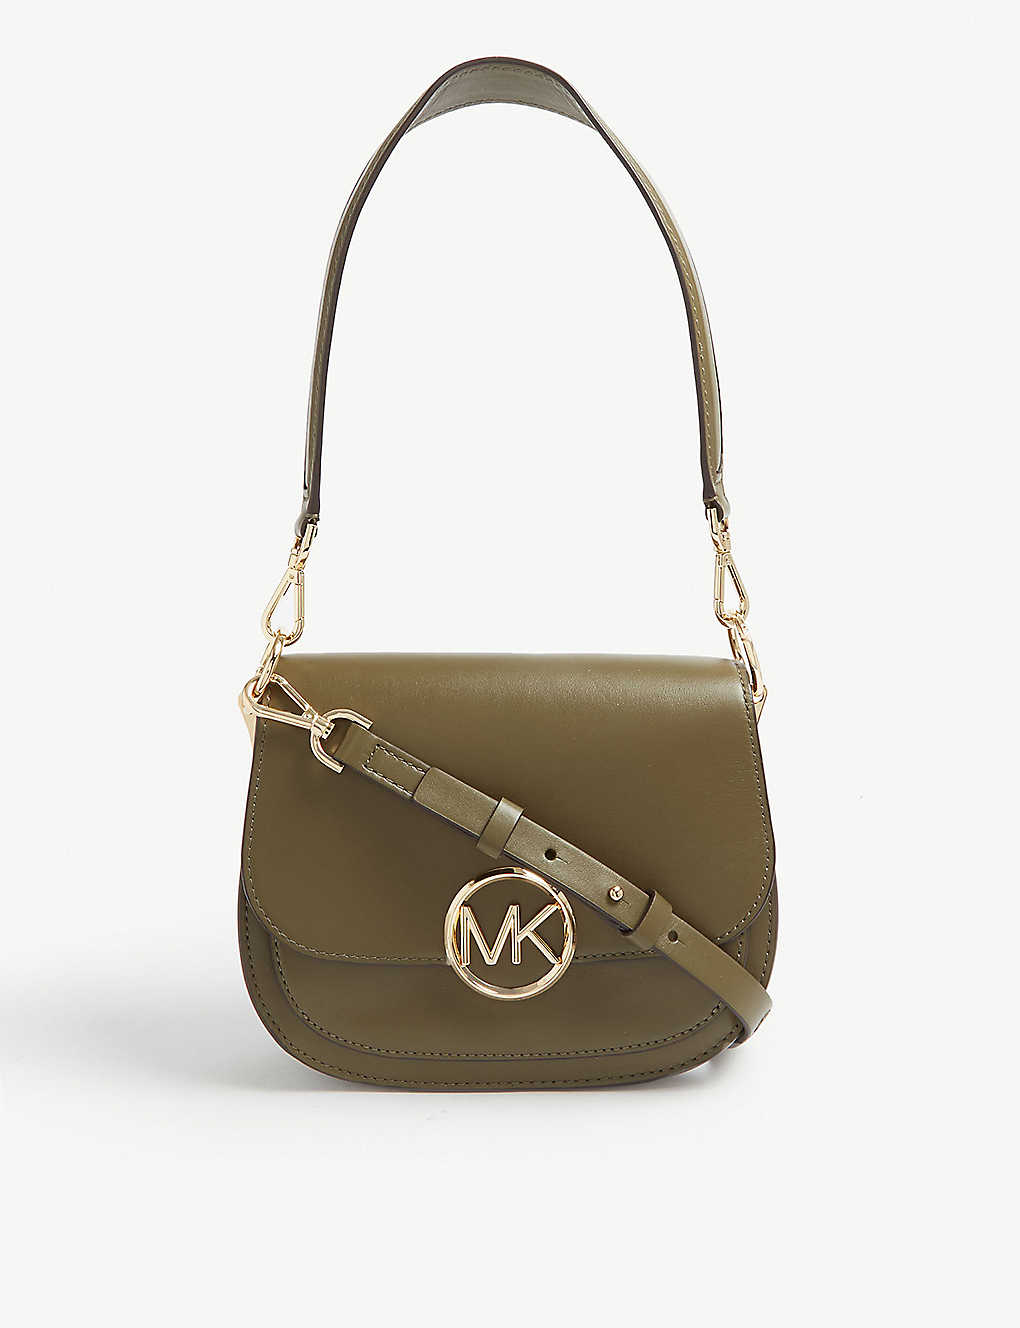 294ea4b660842e MICHAEL MICHAEL KORS - Lillie medium leather saddle bag | Selfridges.com